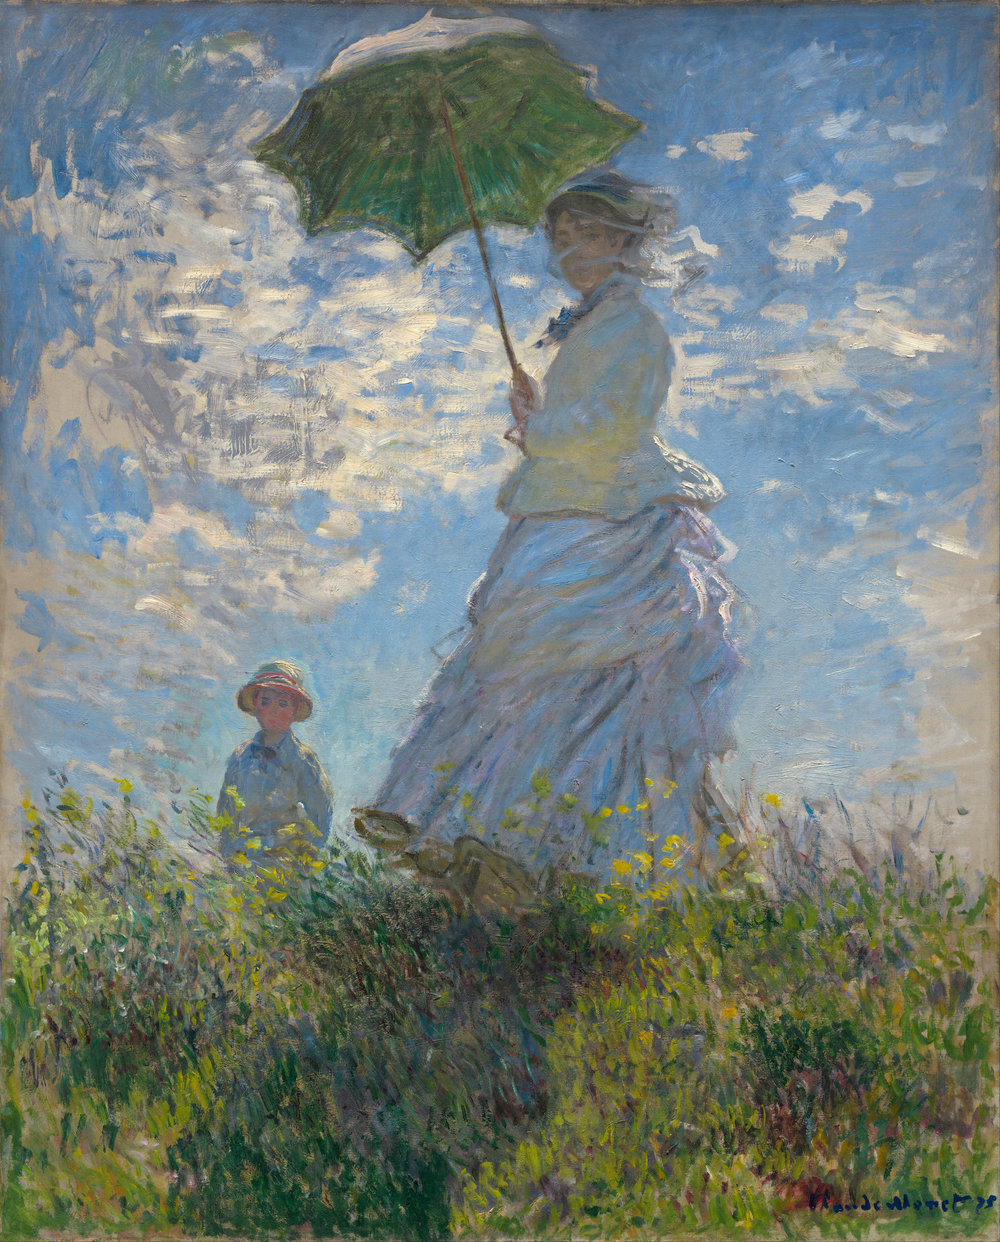 Claude_Monet_-_Woman_with_a_Parasol_-_Madame_Monet_and_Her_Son_-_Google_Art_Project.jpg